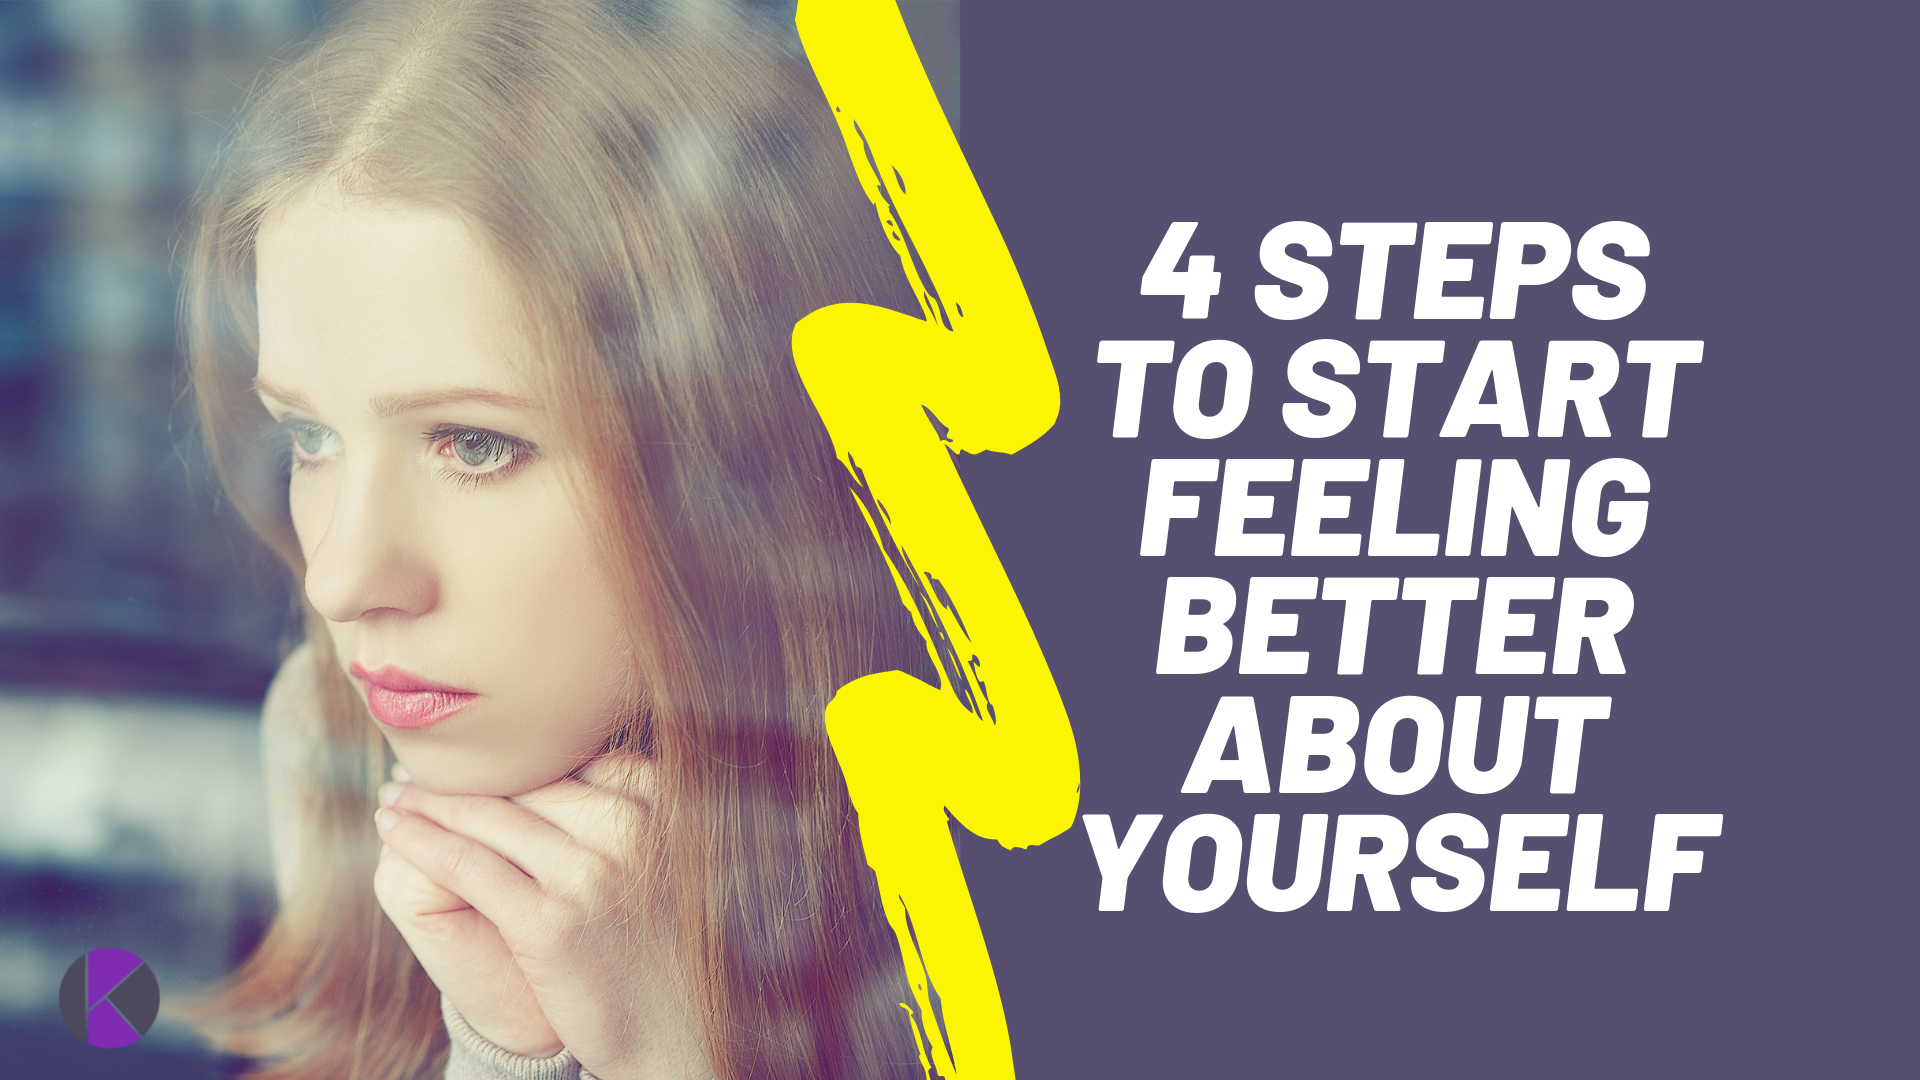 4 Steps to start feeling better about yourself-2.png